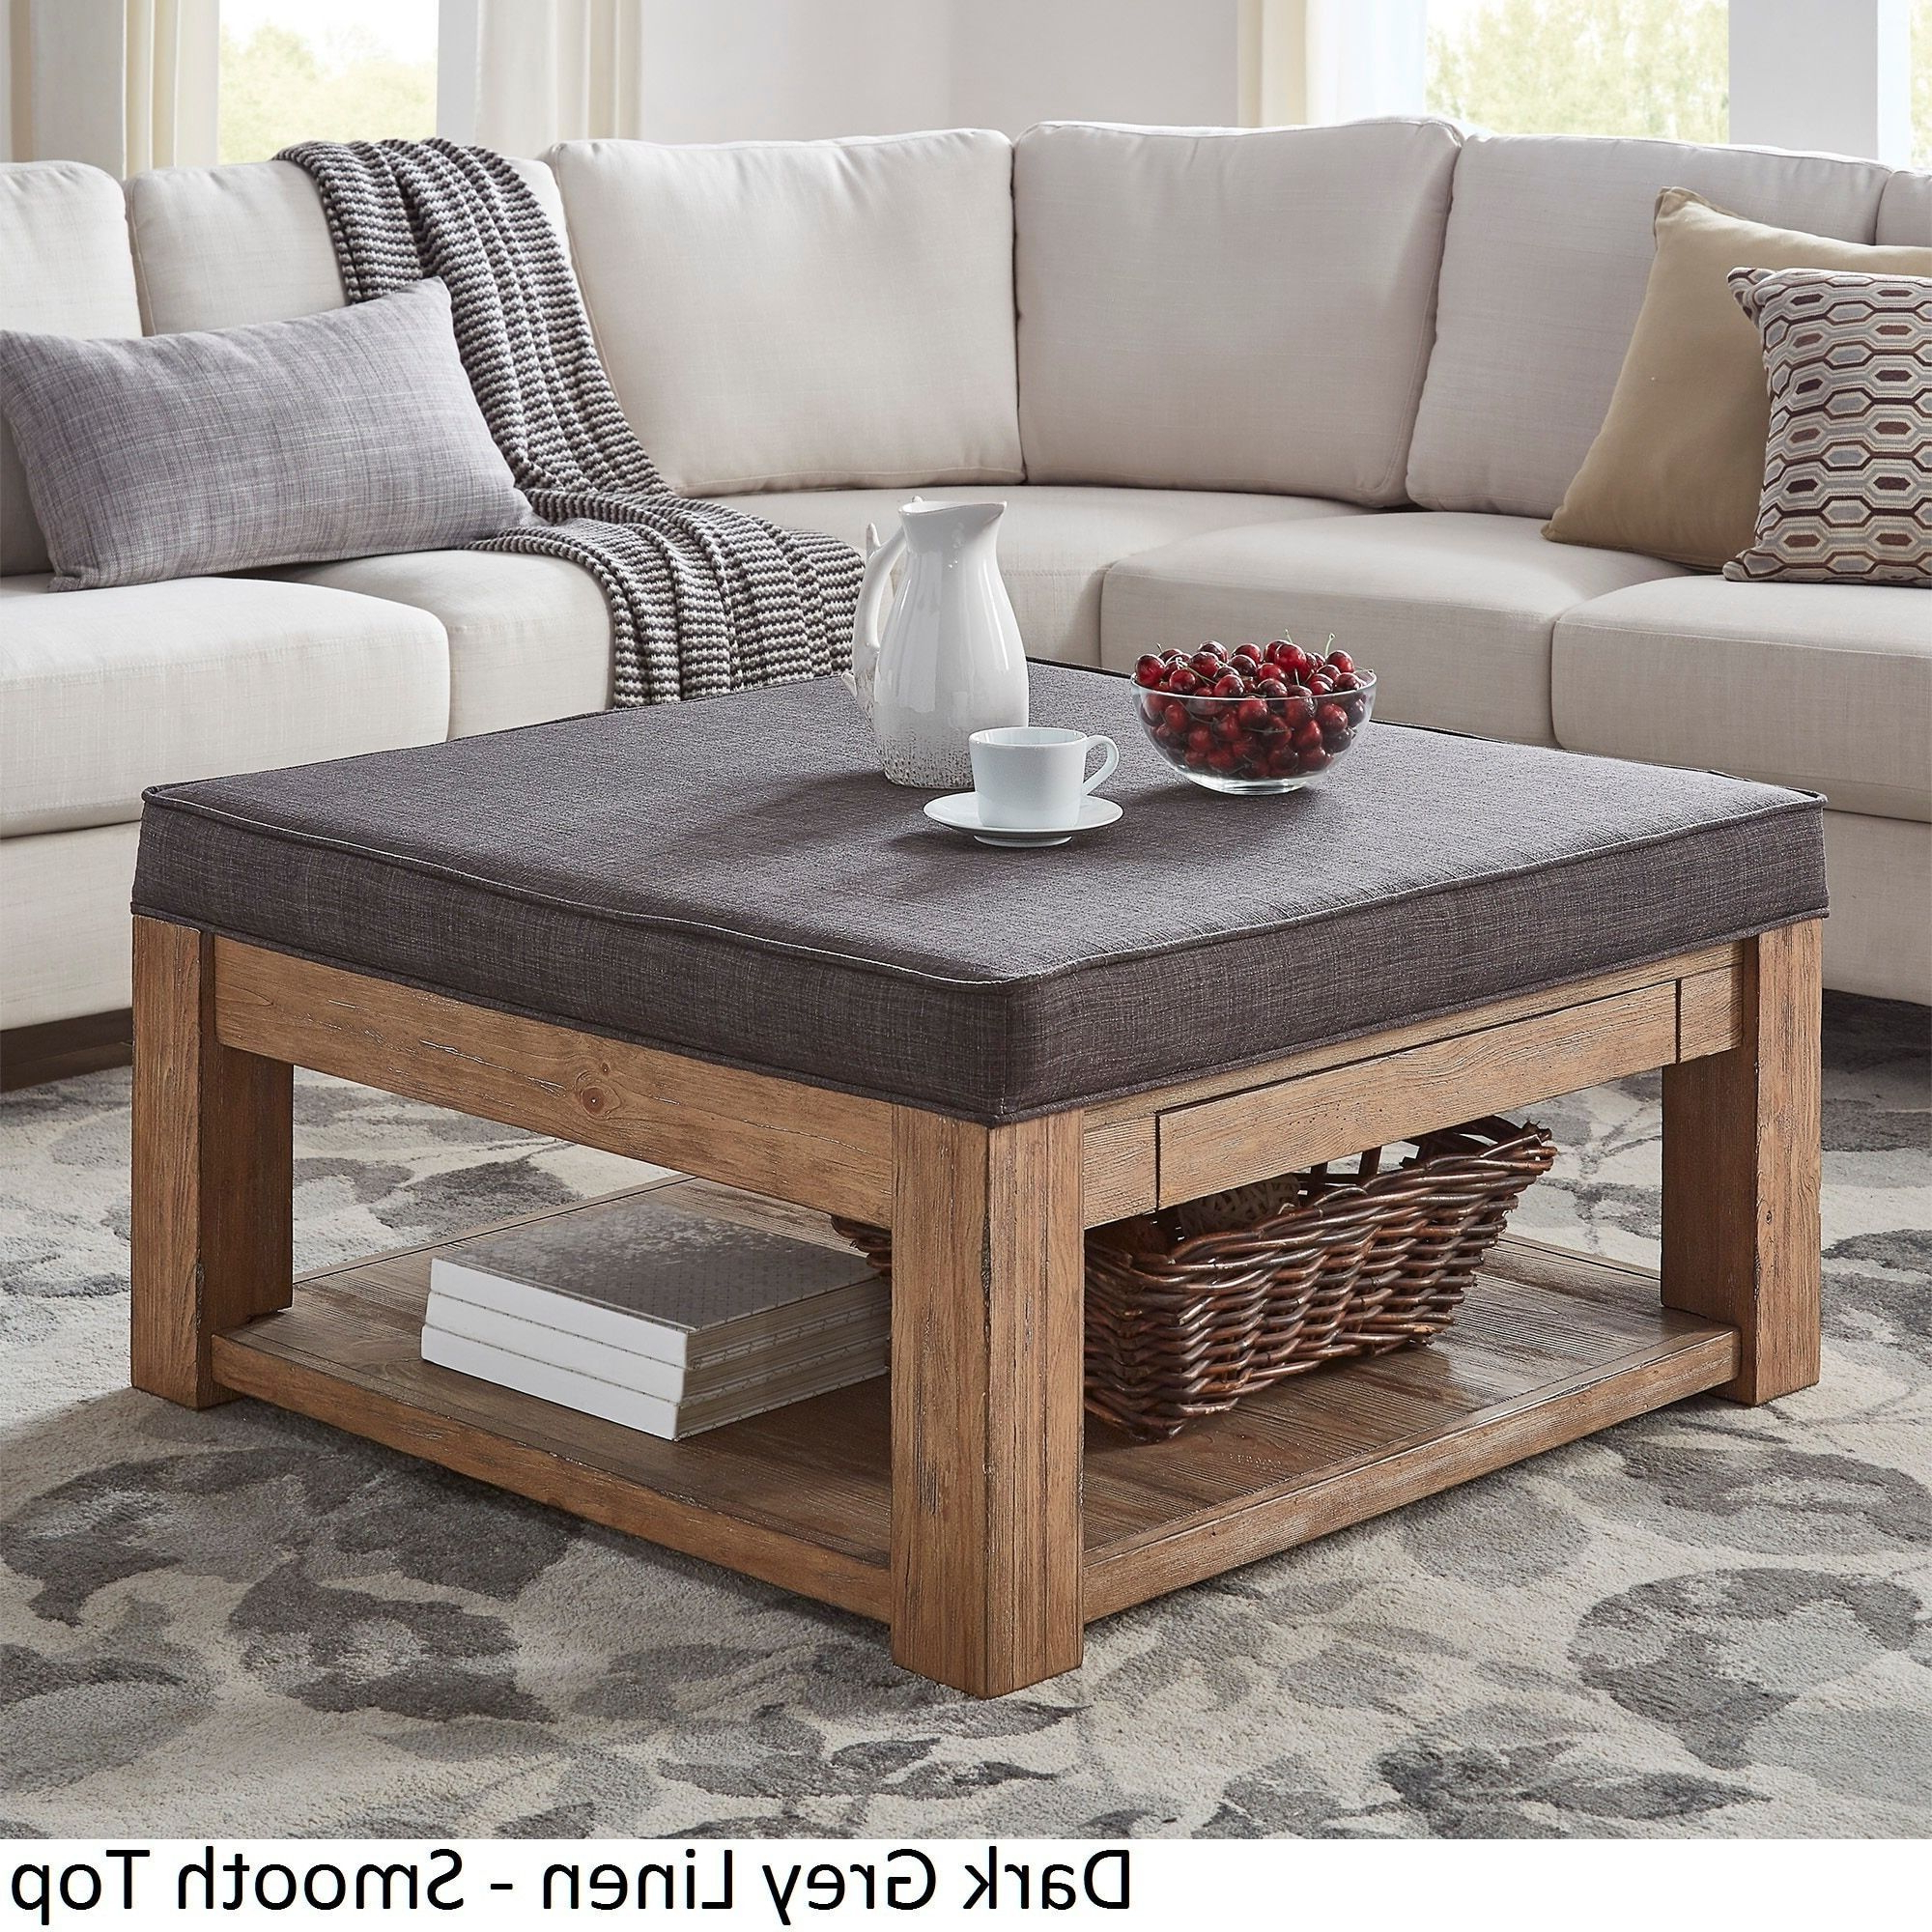 Lennon Pine Square Storage Ottoman Coffee Tableinspire Q Intended For Preferred Lennon Pine Planked Storage Ottoman Coffee Tables (View 5 of 20)